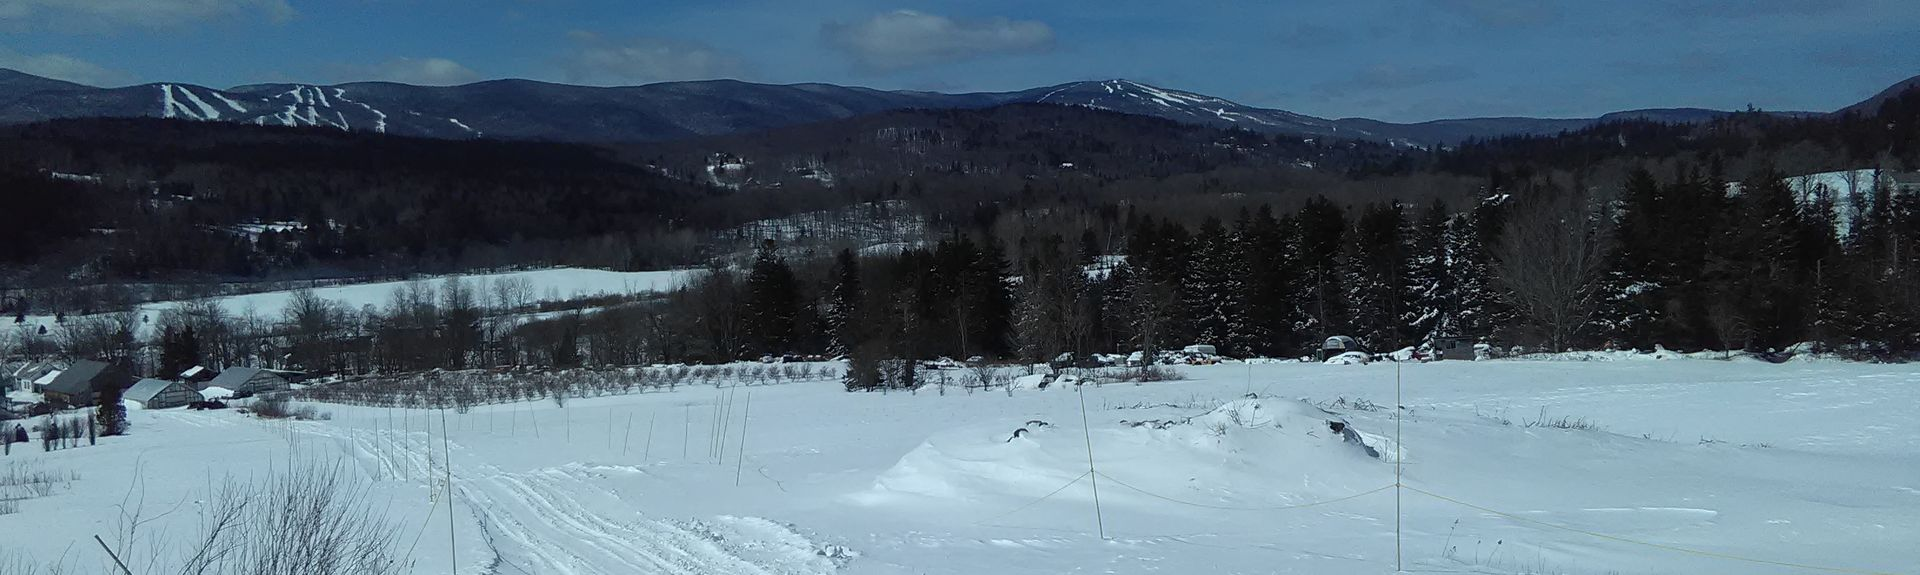 Berkshire East Ski Resort, Hawley, Massachusetts, United States